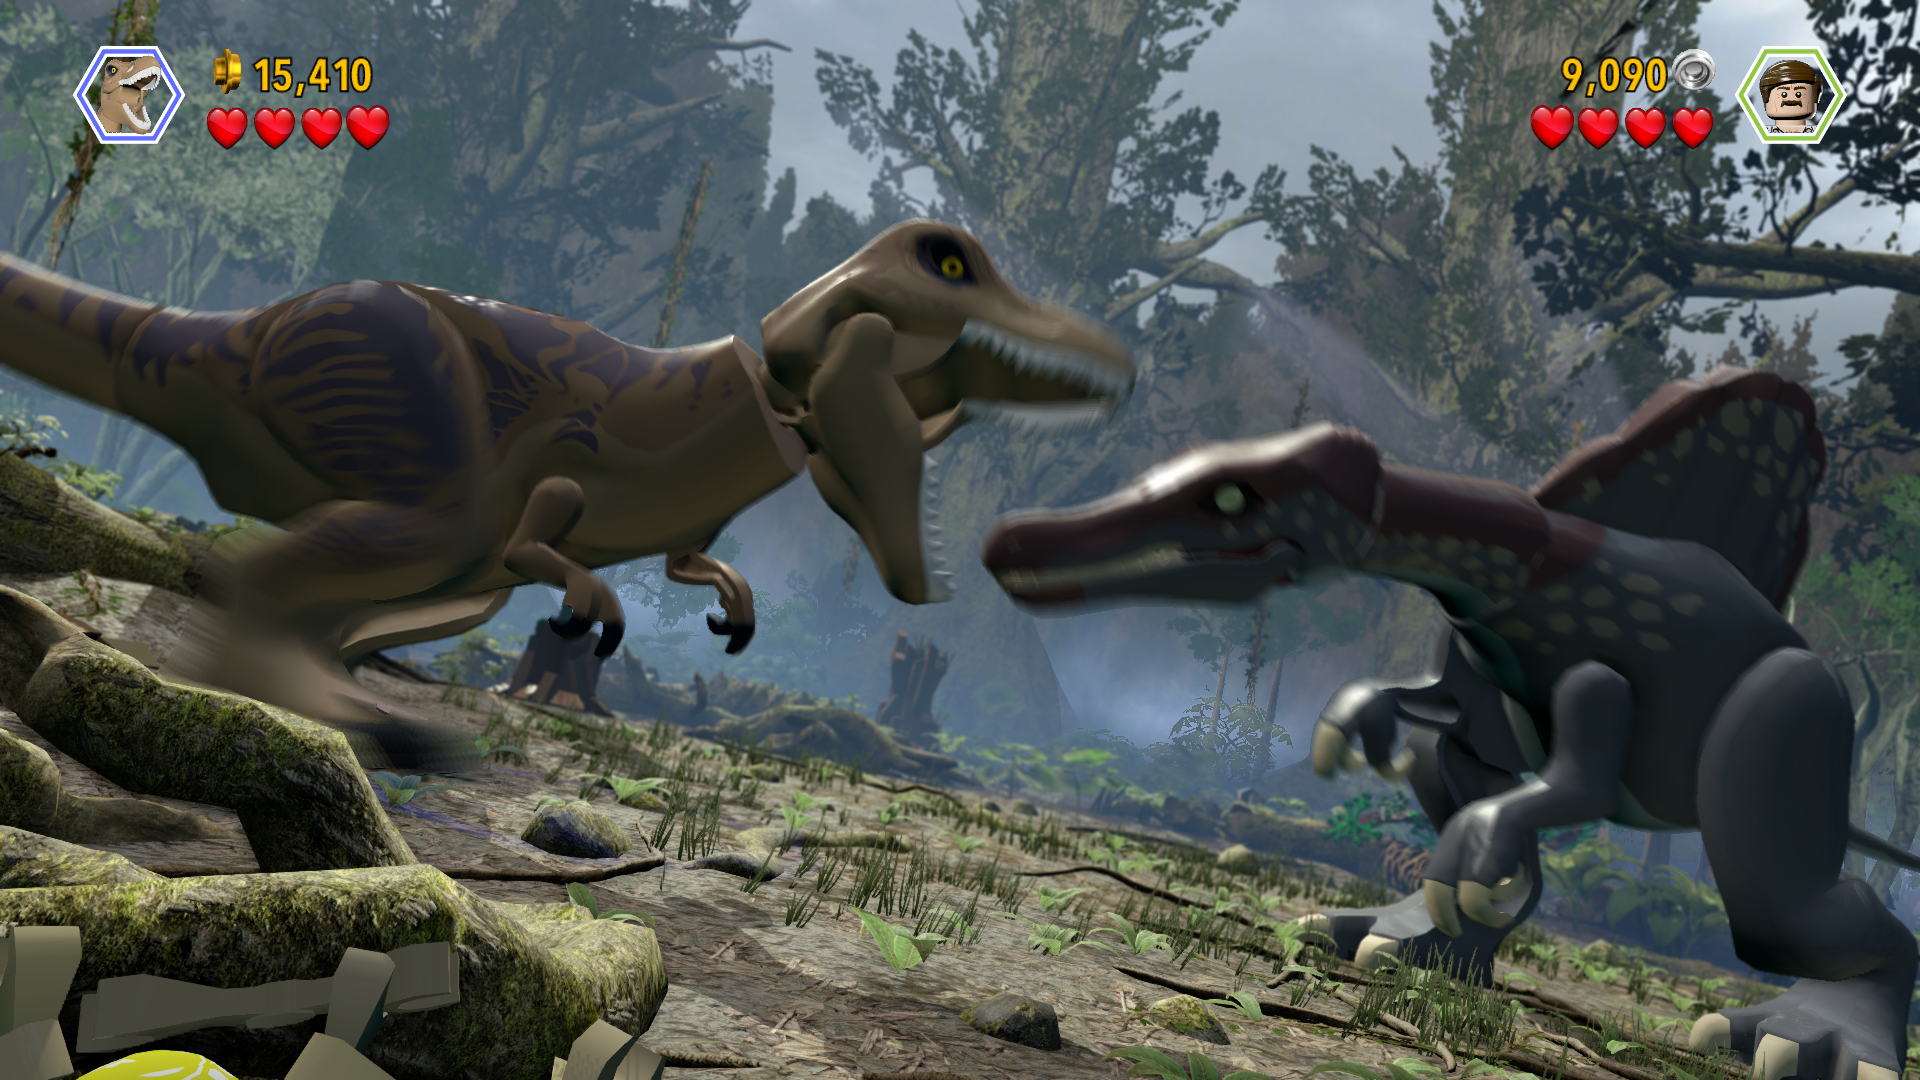 Lego Jurassic World (PS4): COMPLETED!